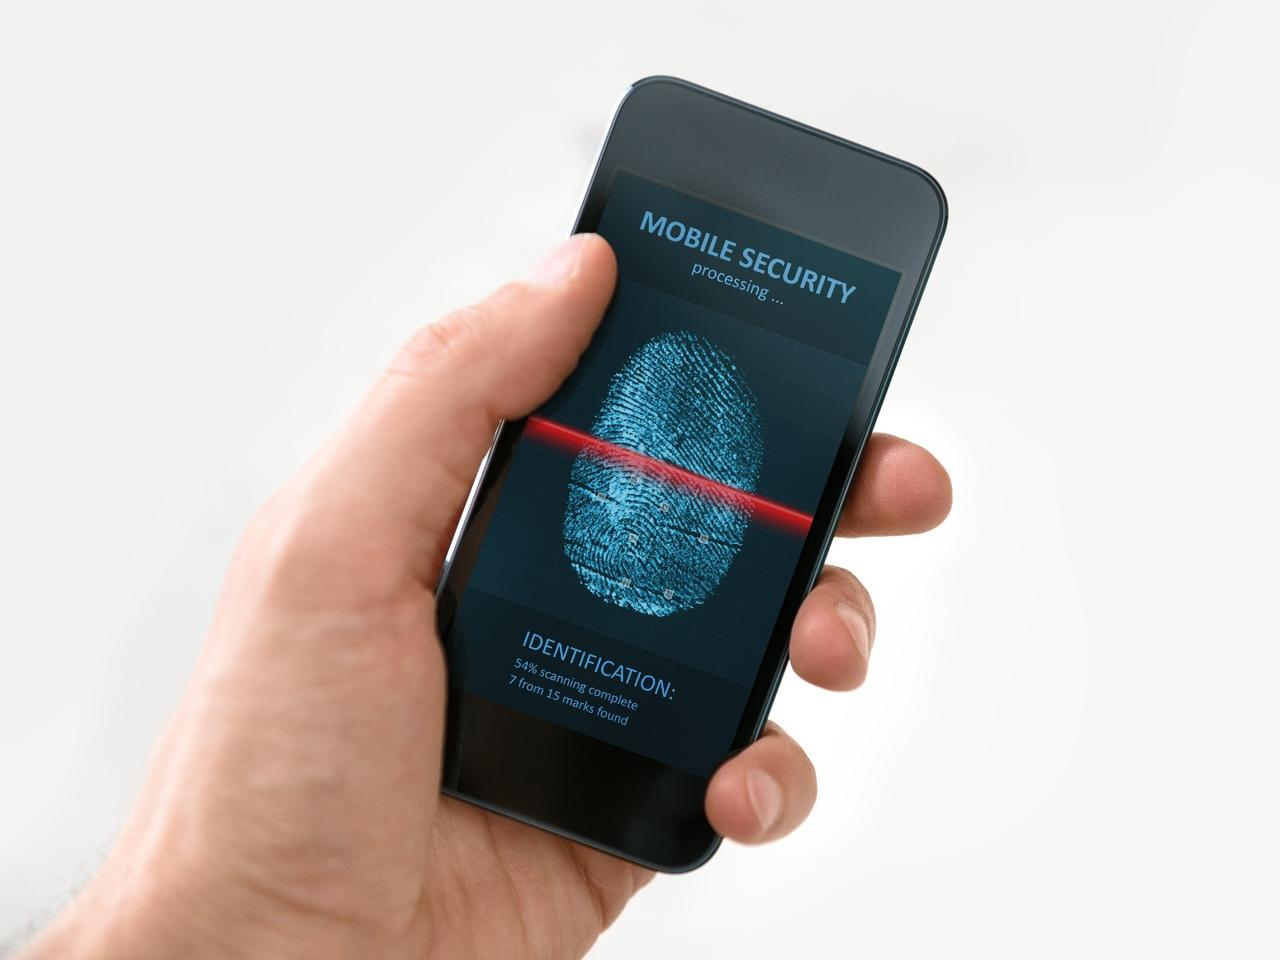 Qualcomm's new range of sensors means fingerprint scanning can now be embedded in phone displays.